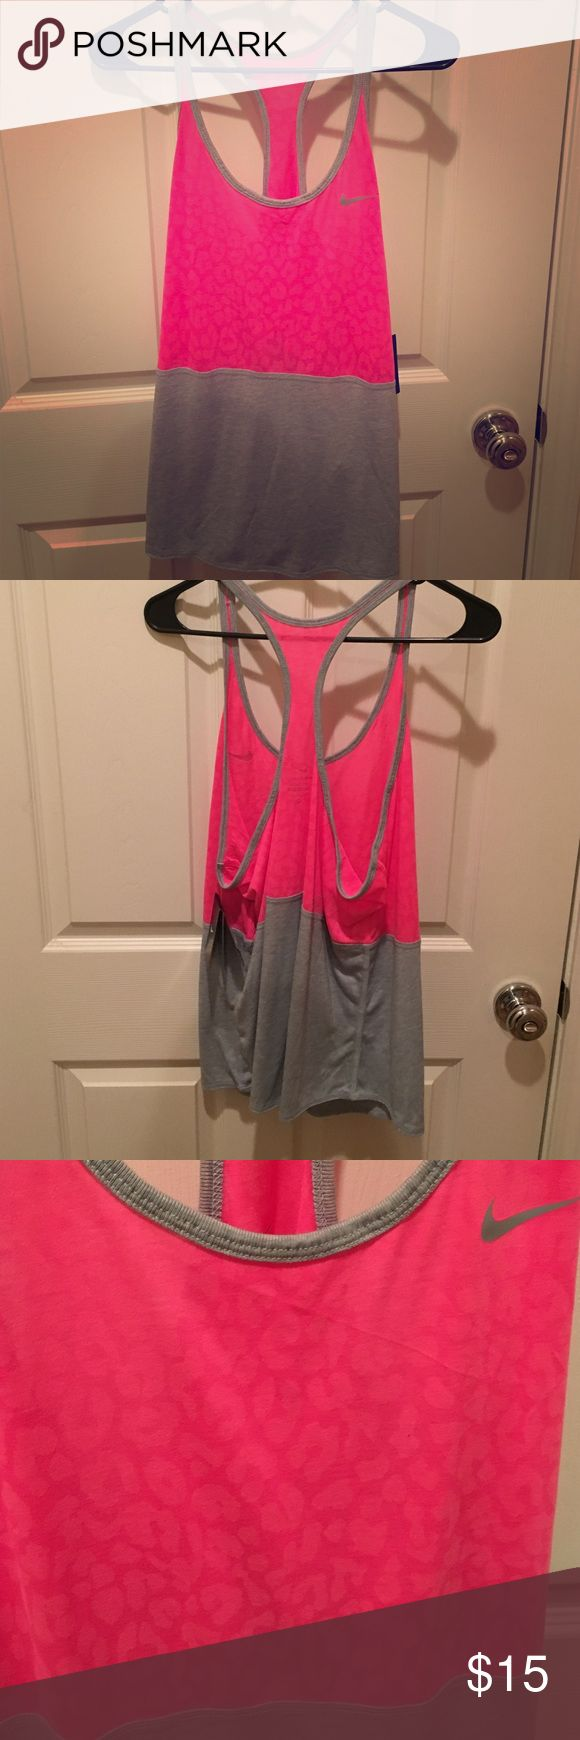 🆕 Nike leopard print tank Dri-fit tank. New with tags. Pink has leopard print Nike Tops Tank Tops